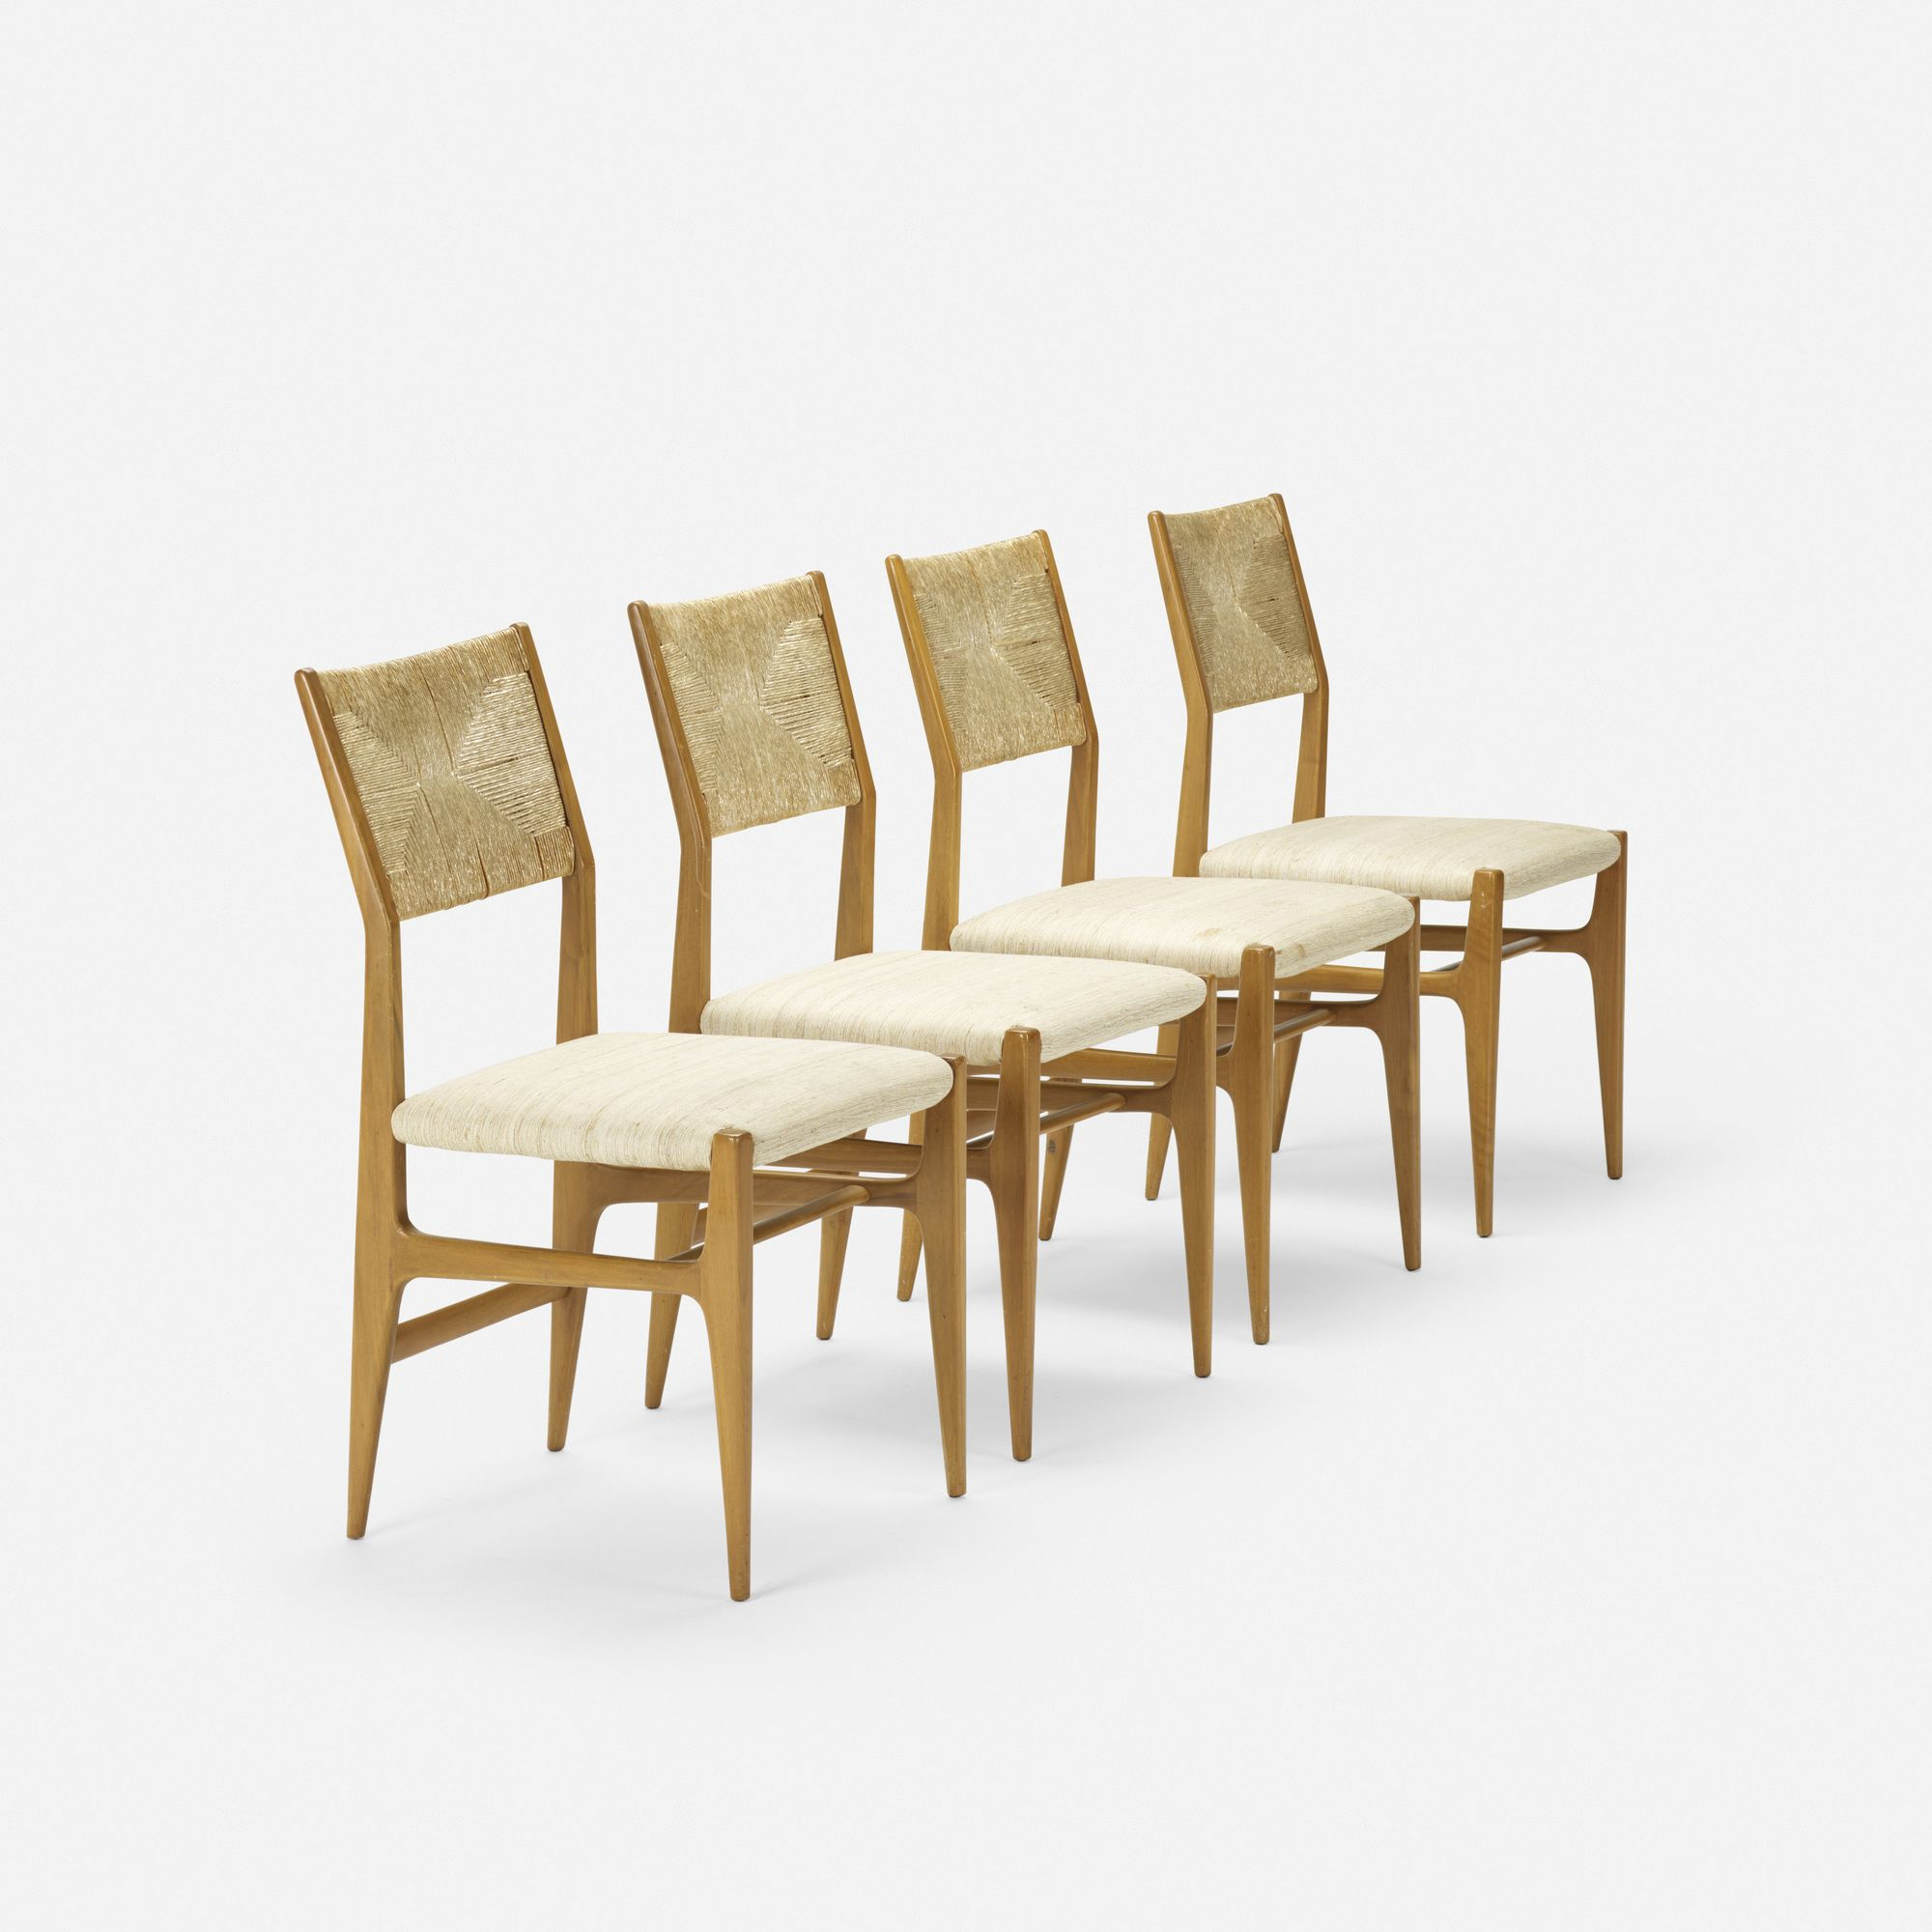 Eßzimmerstühle gio ponti dining chairs model 116 set of four wright20 com gio